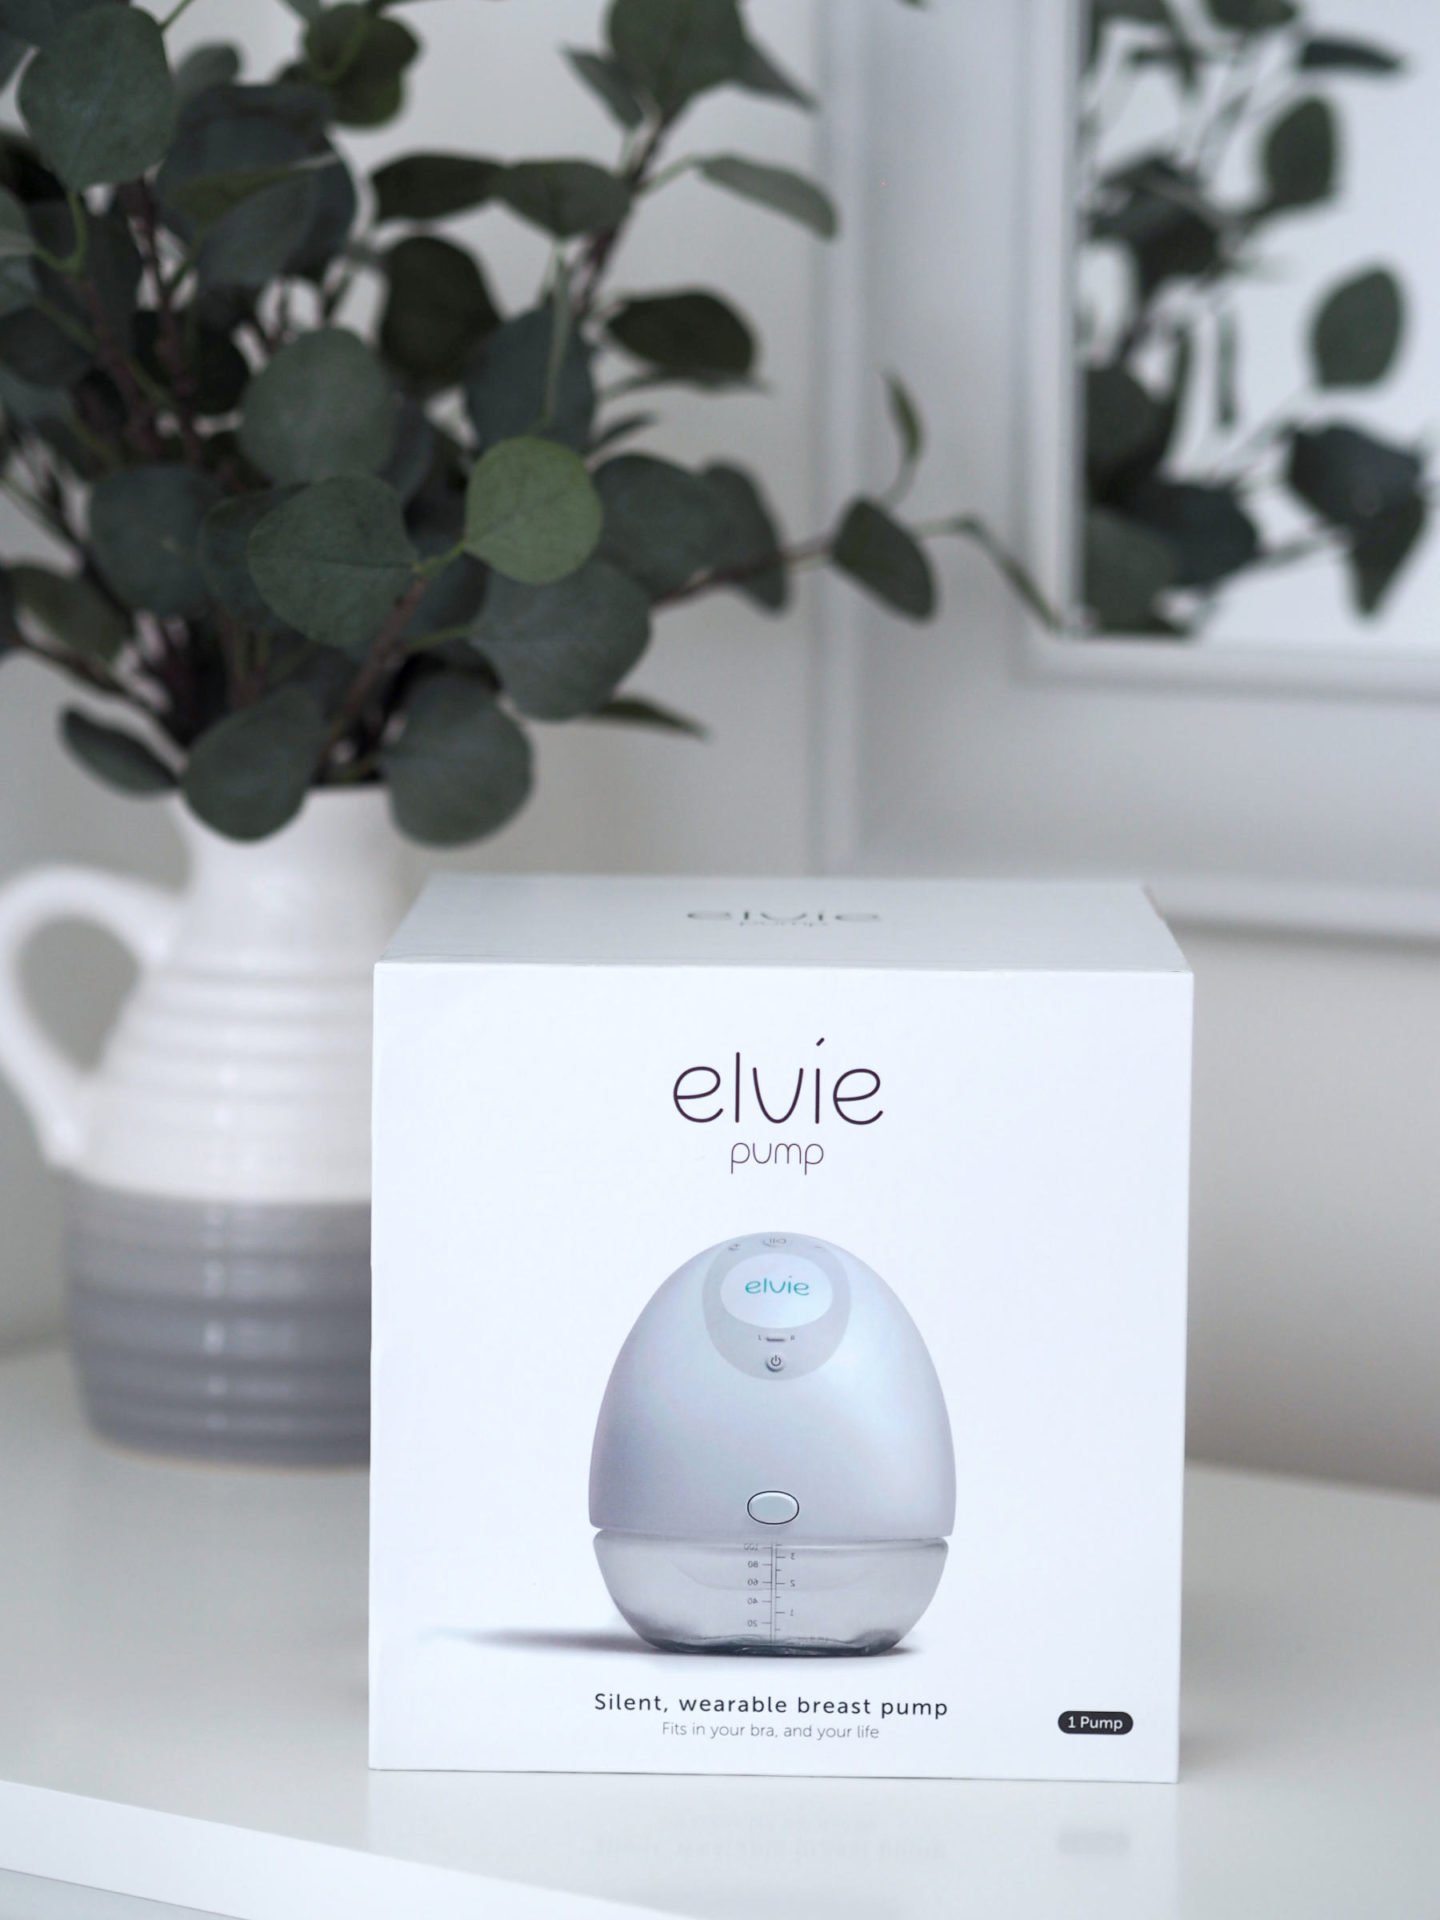 Elvie breast pump, Hands Free and Silent Breast Pump, breastfeeding, exclusive pumping, Bellababy breast pump, electric pump, mum life, first time mum, mum hacks, breastmilk, breastfeeding support, motherhood